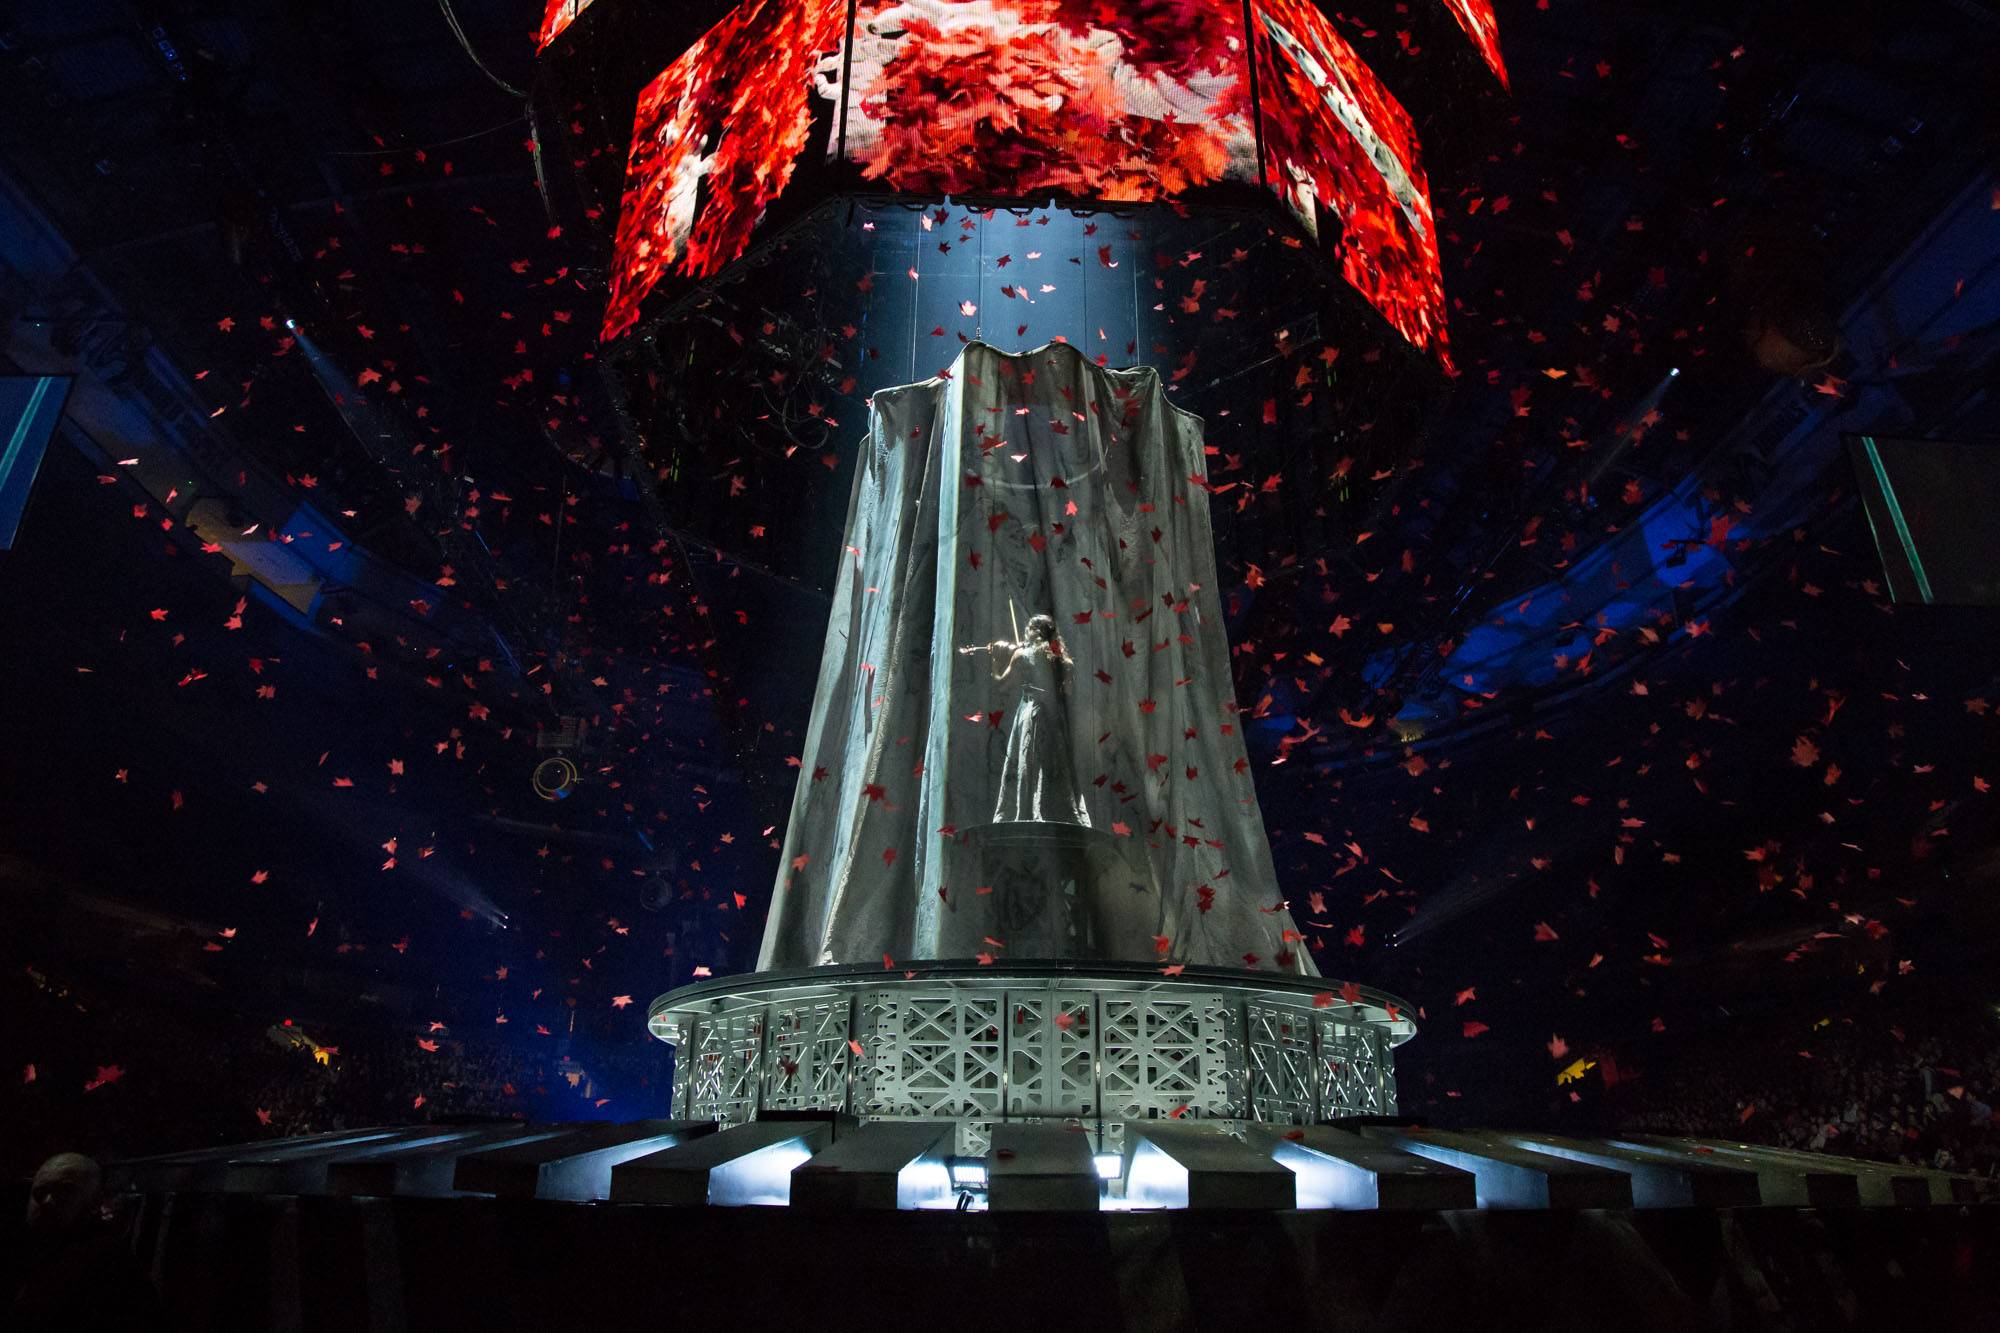 Game of Thrones Live Concert Experience at Rogers Arena, Vancouver, Apr. 1 2017. Kirk Chantraine photo.